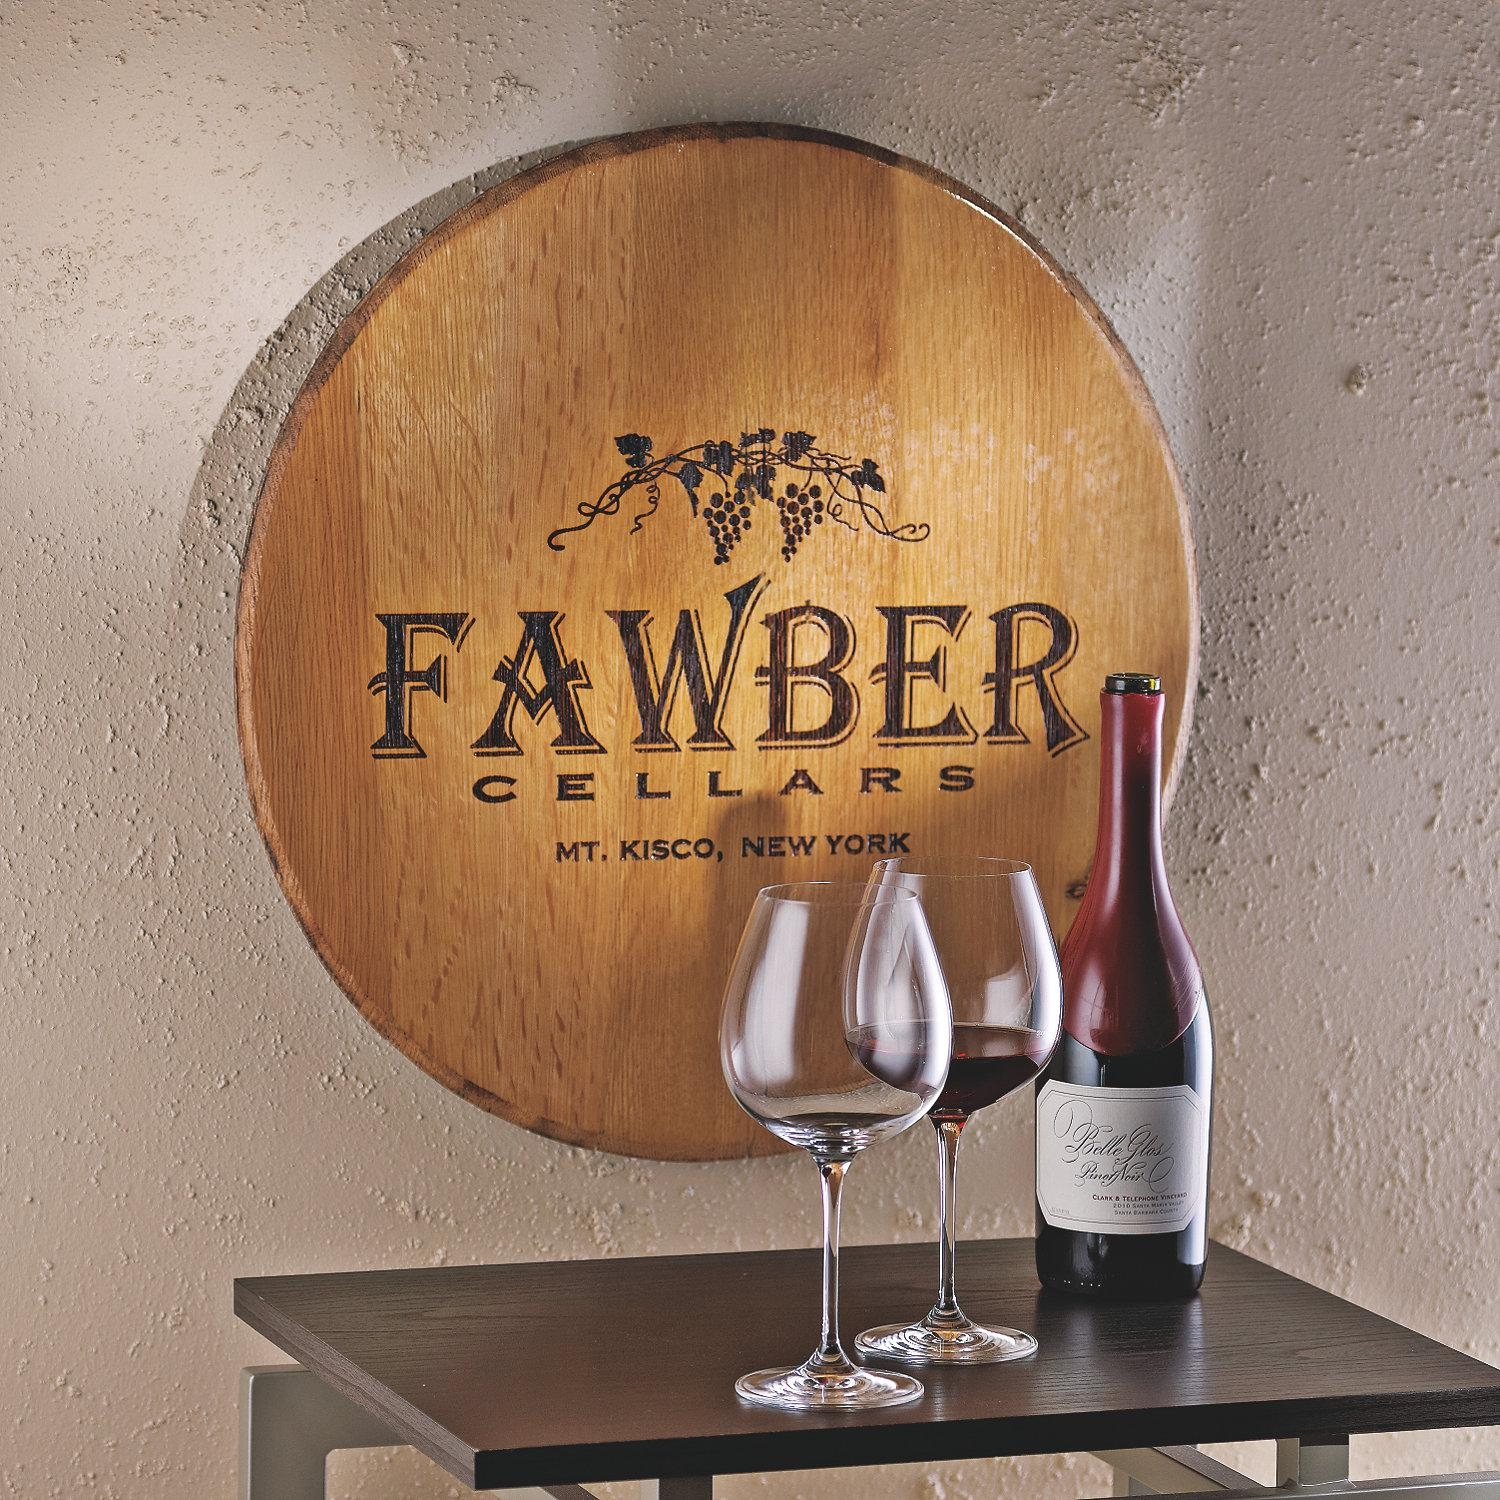 Personalized Signs & Wall Décor | Personalized Décor | Housewares In Wine Barrel Wall Art (Image 6 of 20)